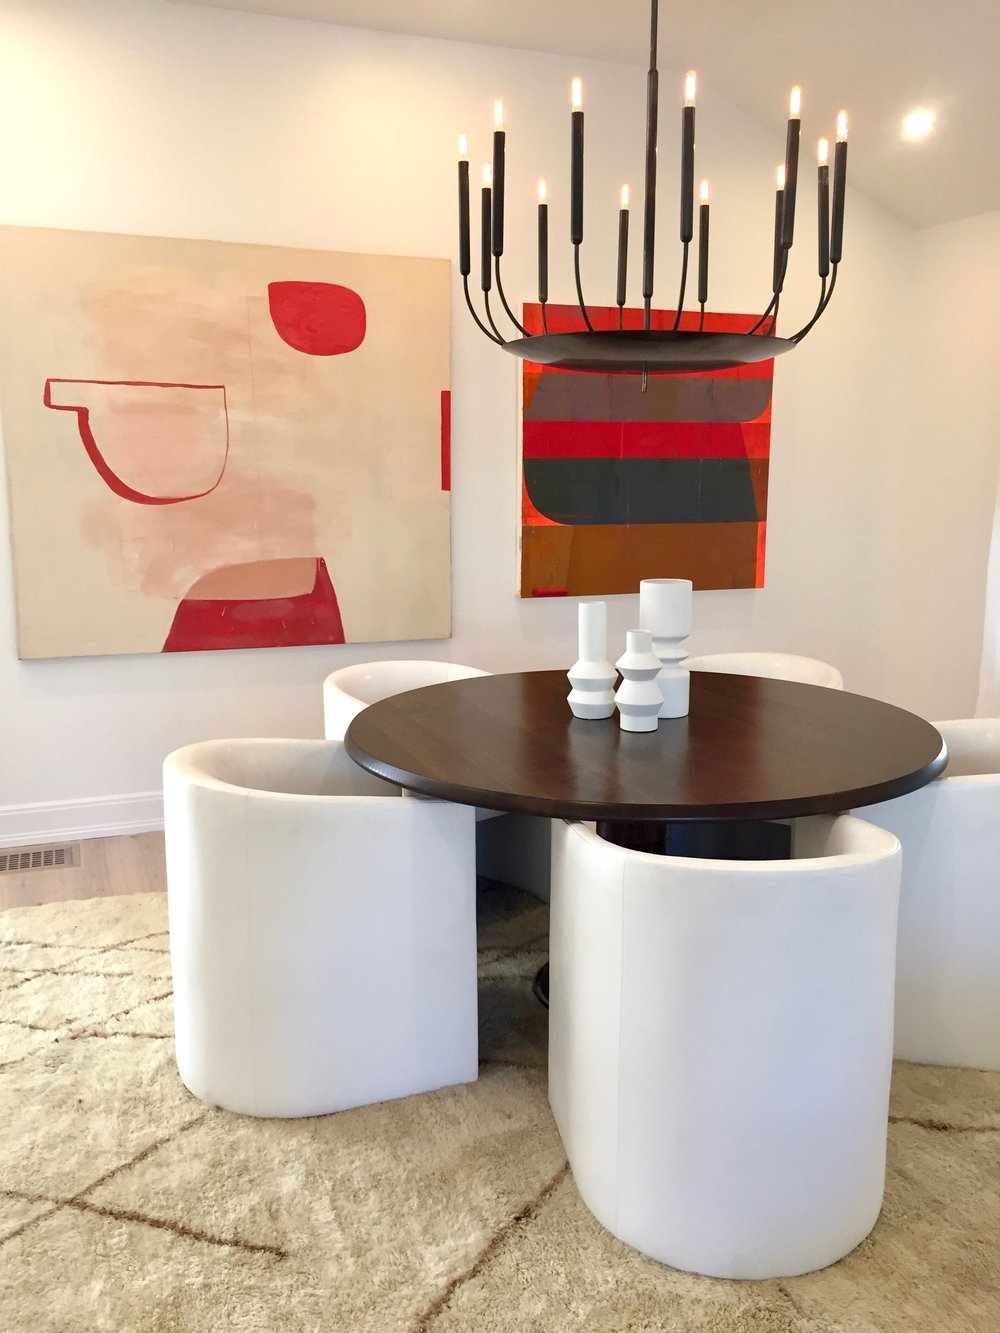 Denver Designer Show House dining room,  from Denver Post story on the Hilltop home